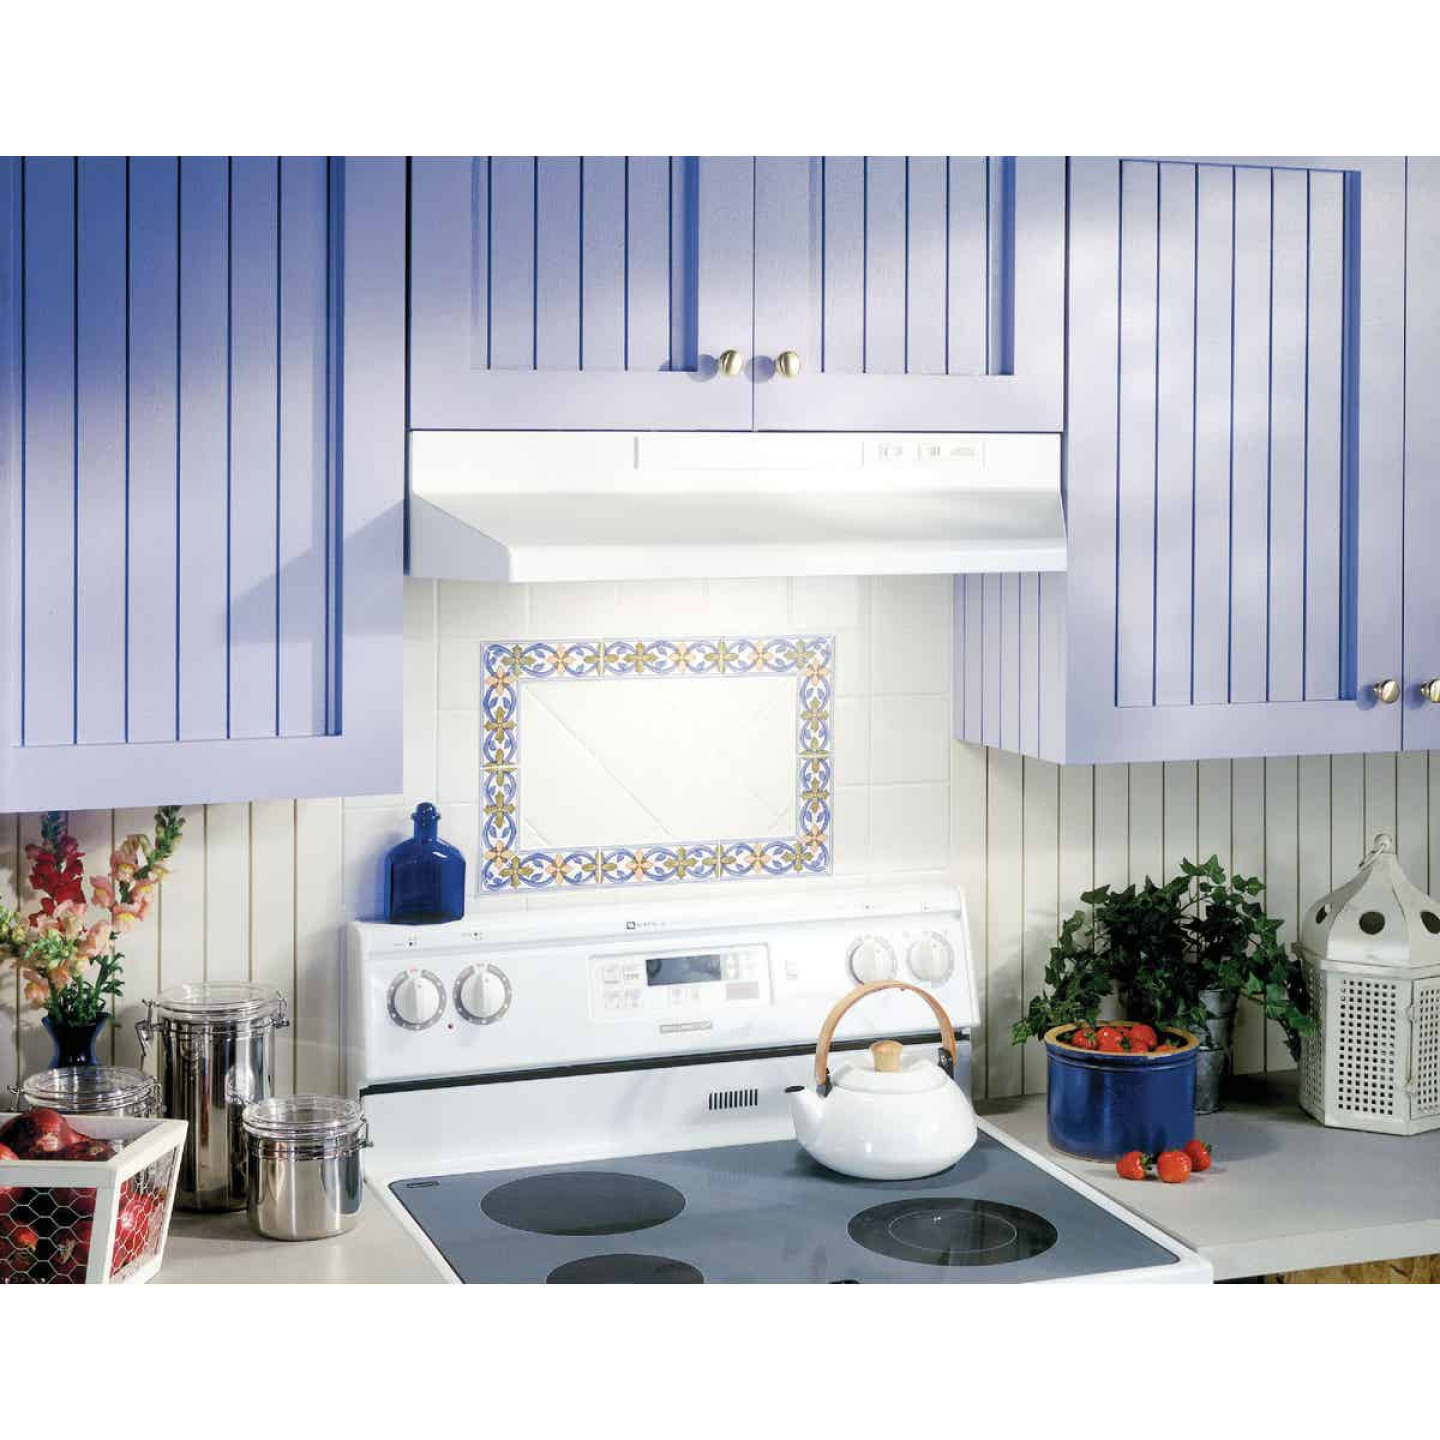 Broan-Nutone F Series 30 In. Convertible White Range Hood Image 2